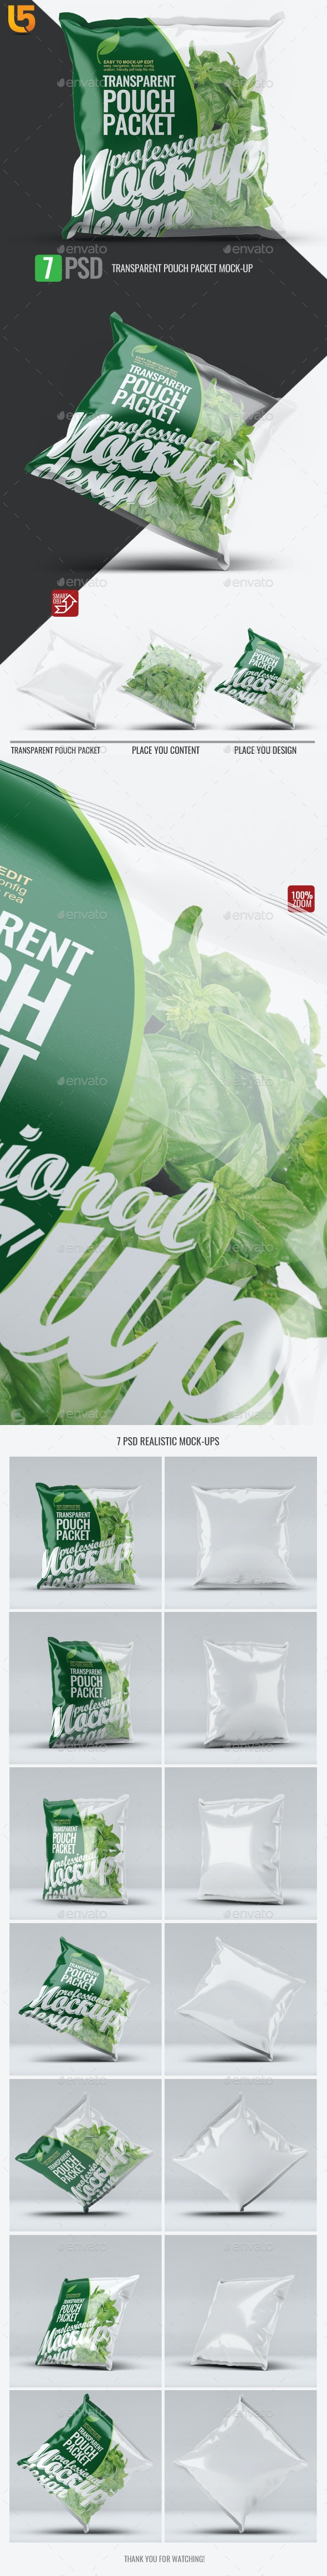 Transparent Pouch Packet Mock-Up - Food and Drink Packaging